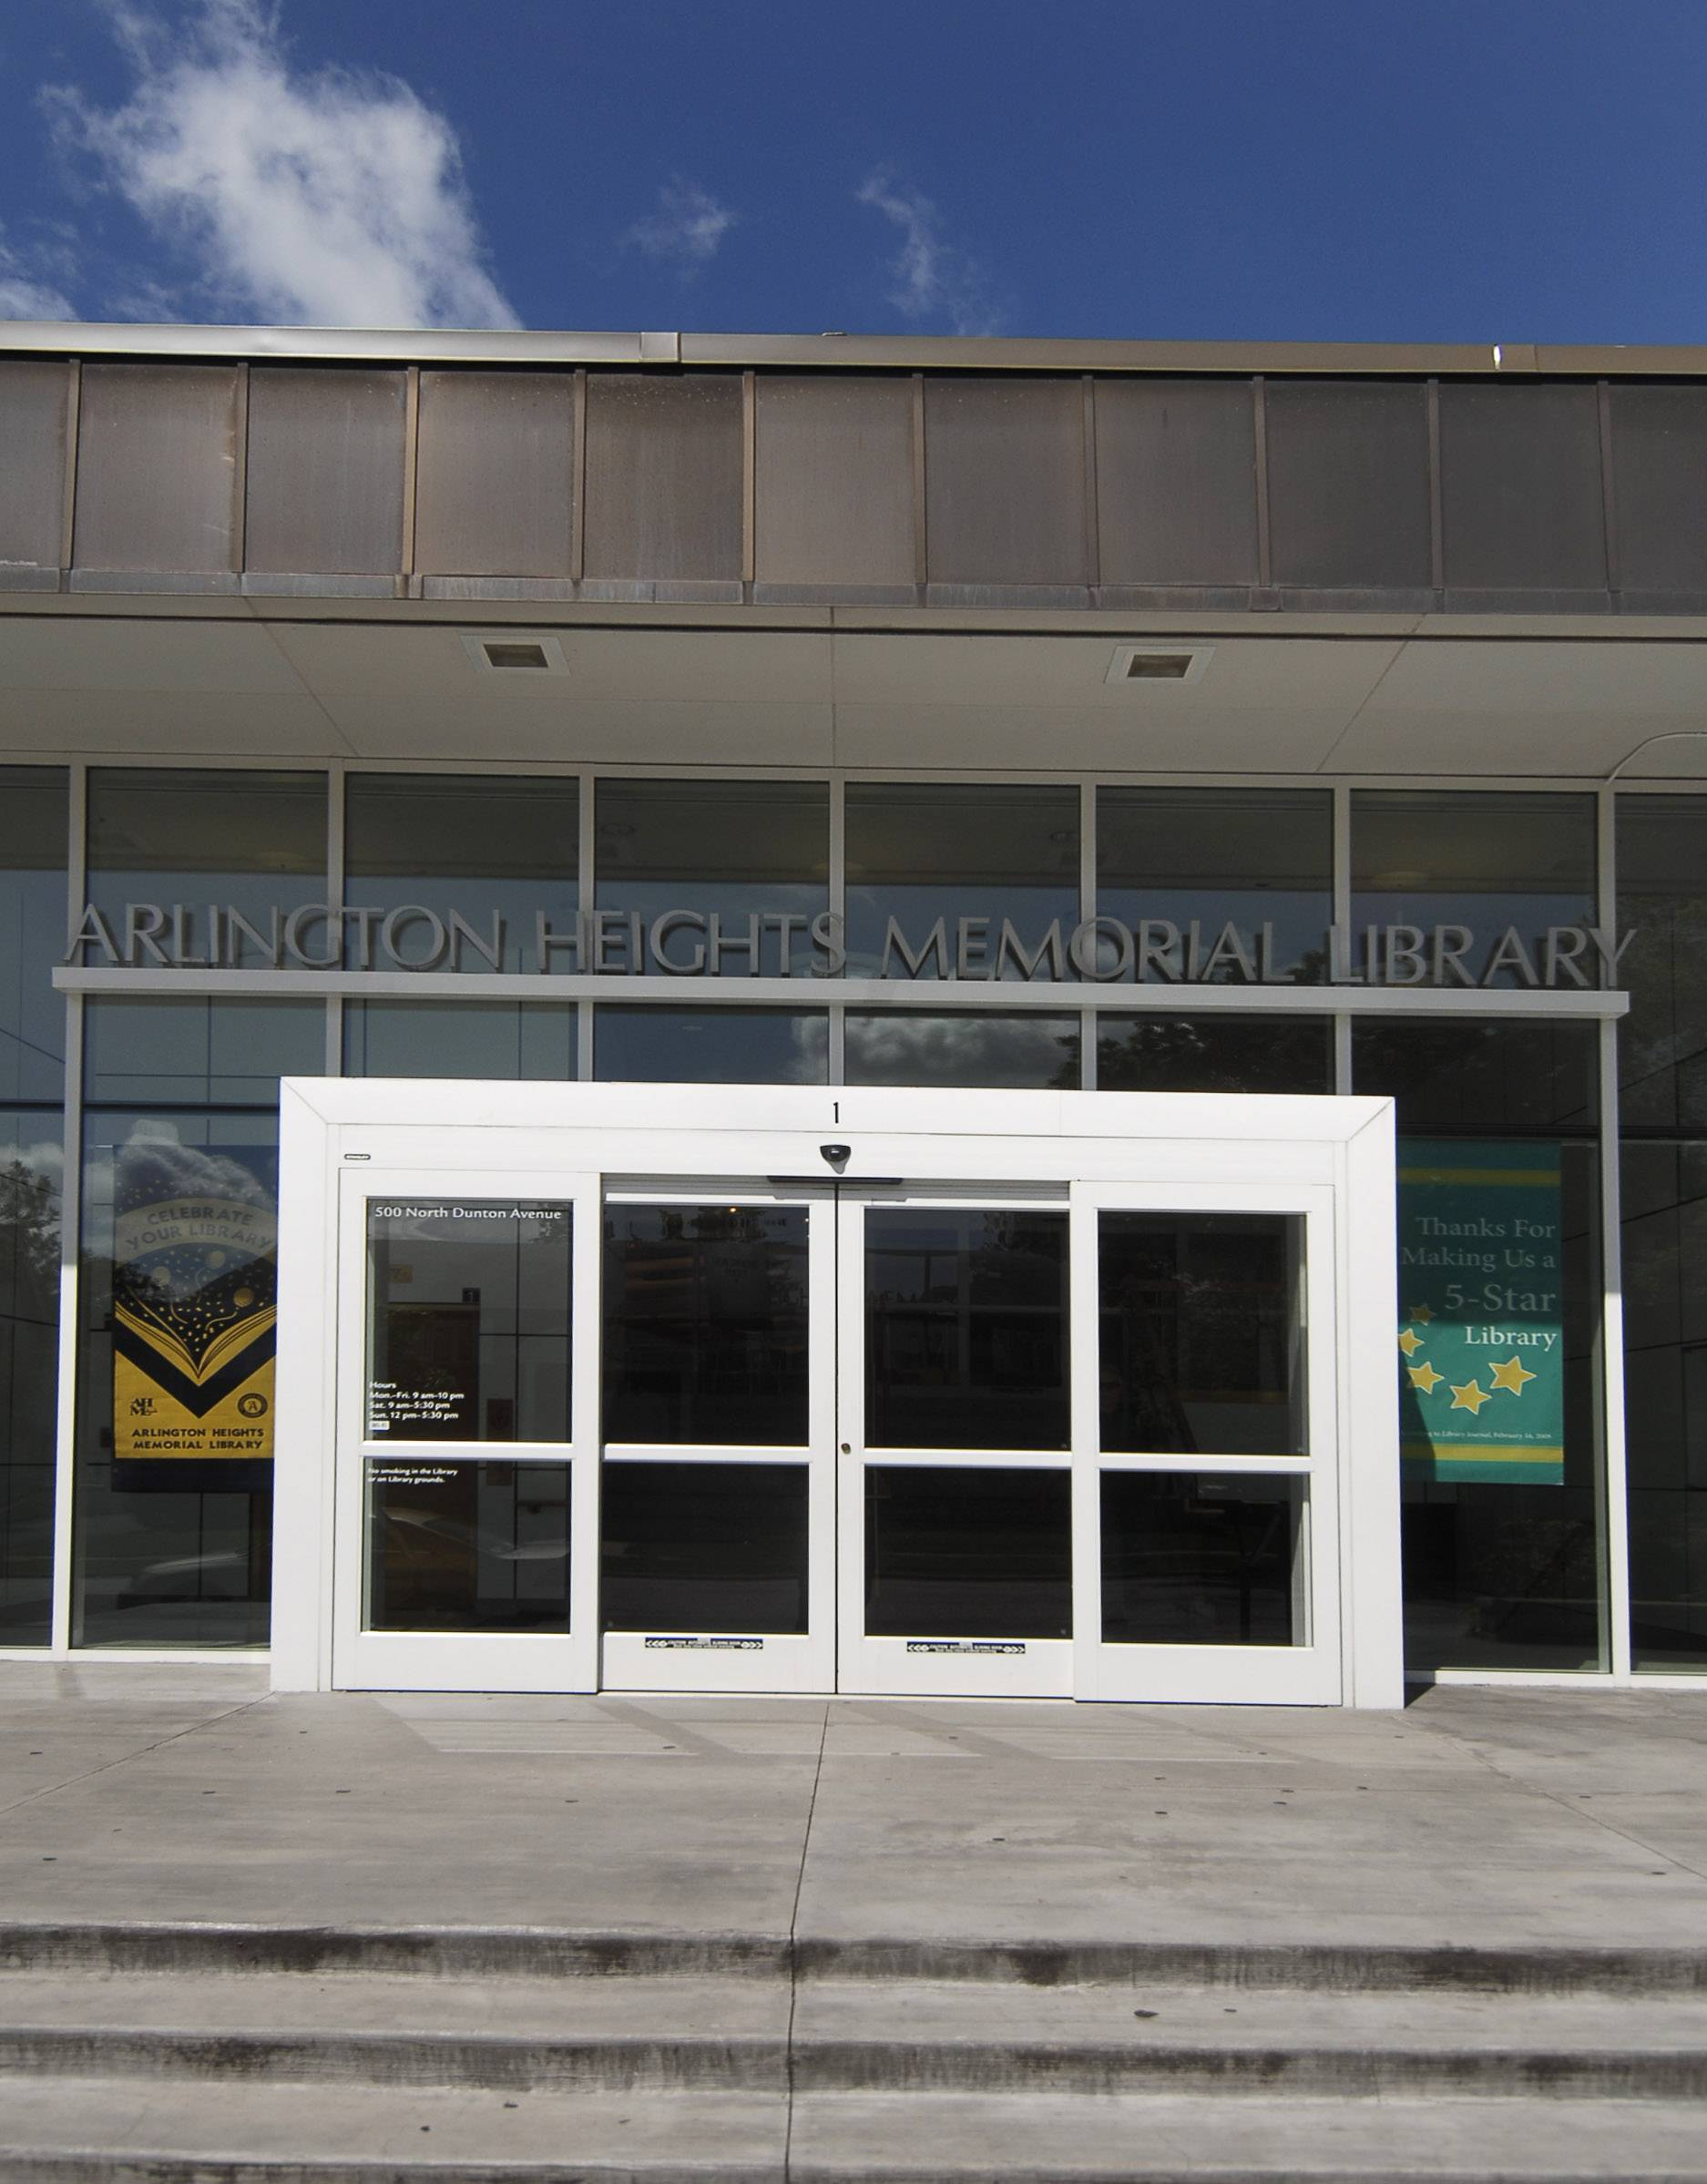 The Arlington Heights Memorial Library has earned a five-star rating from a national publication for 10 consecutive years.